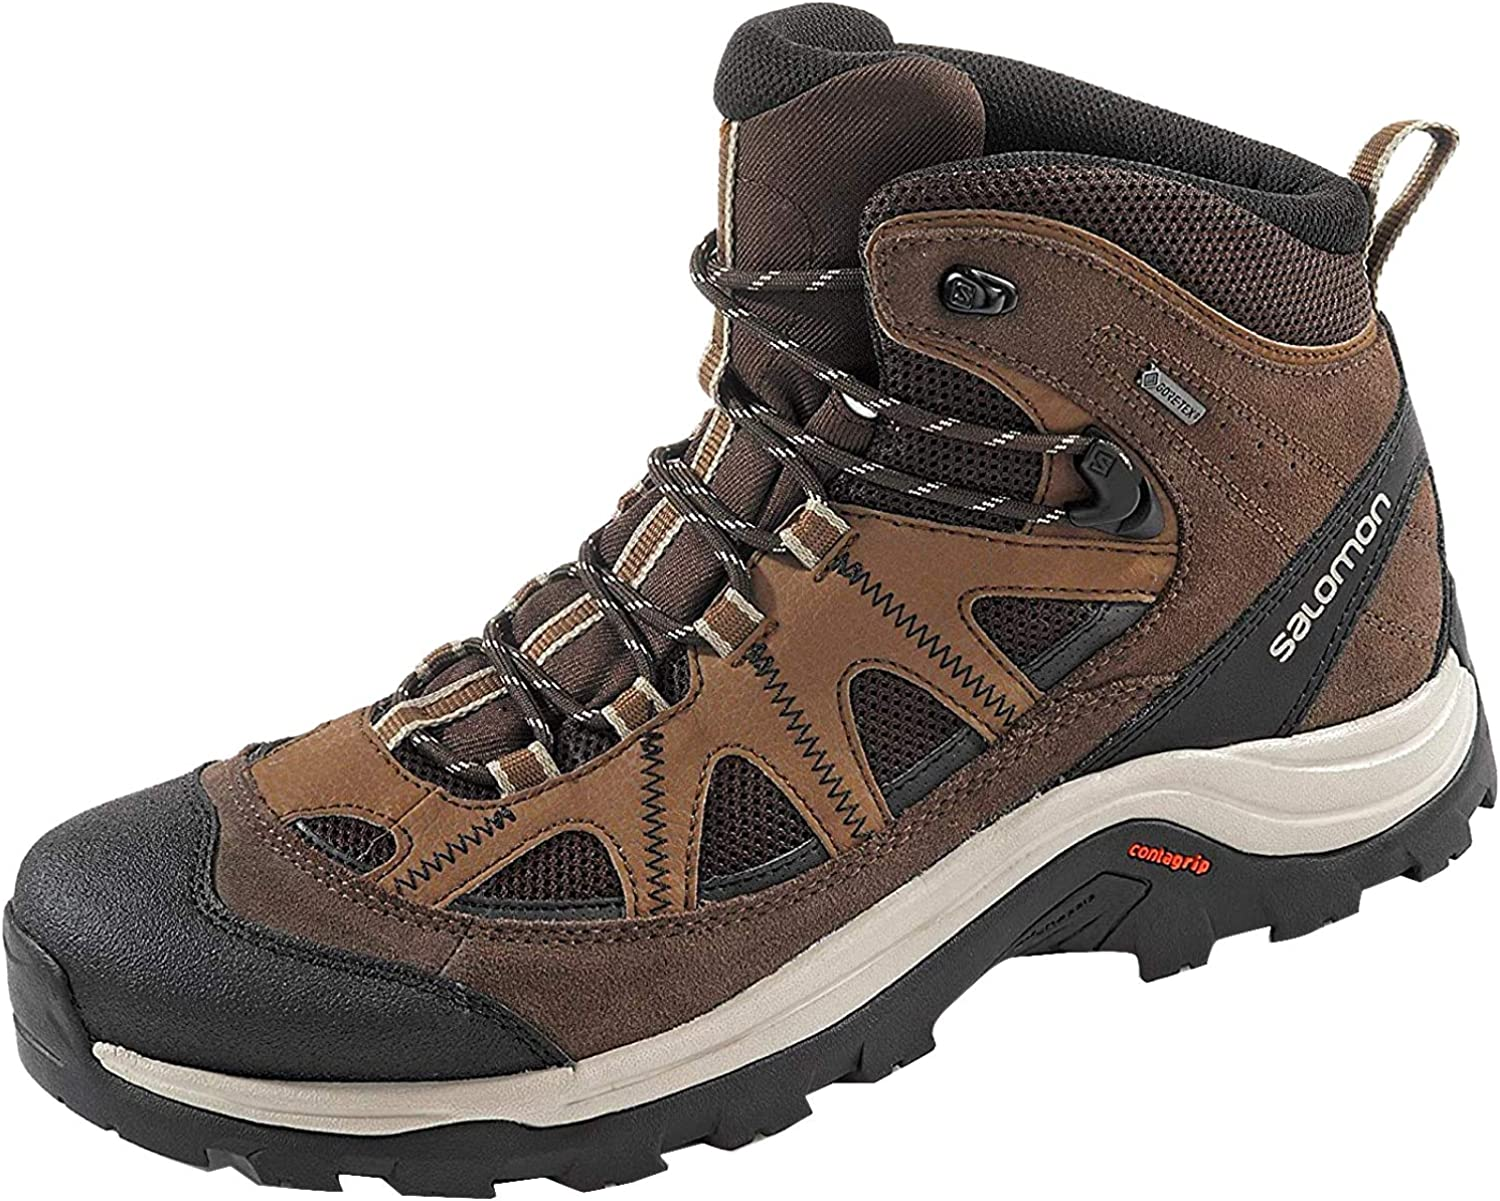 Salomon Men s Authentic Leather GORE-TEX Backpacking Boots